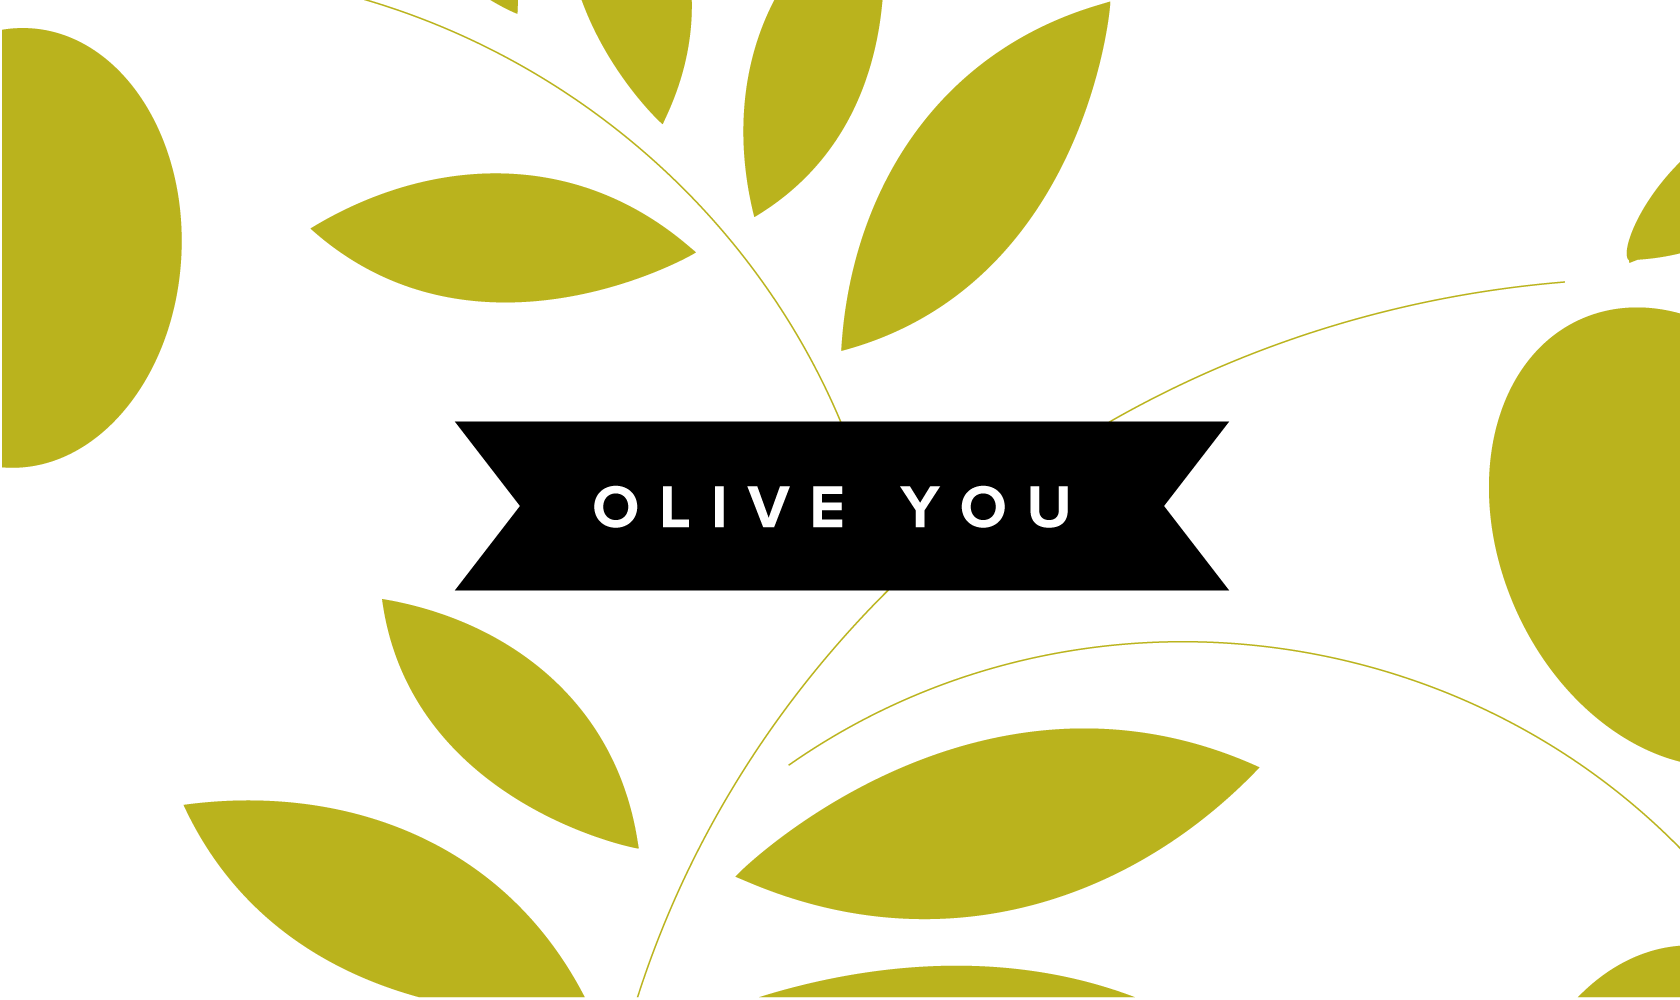 Bill Rogers Design - Olive You - Logo Design